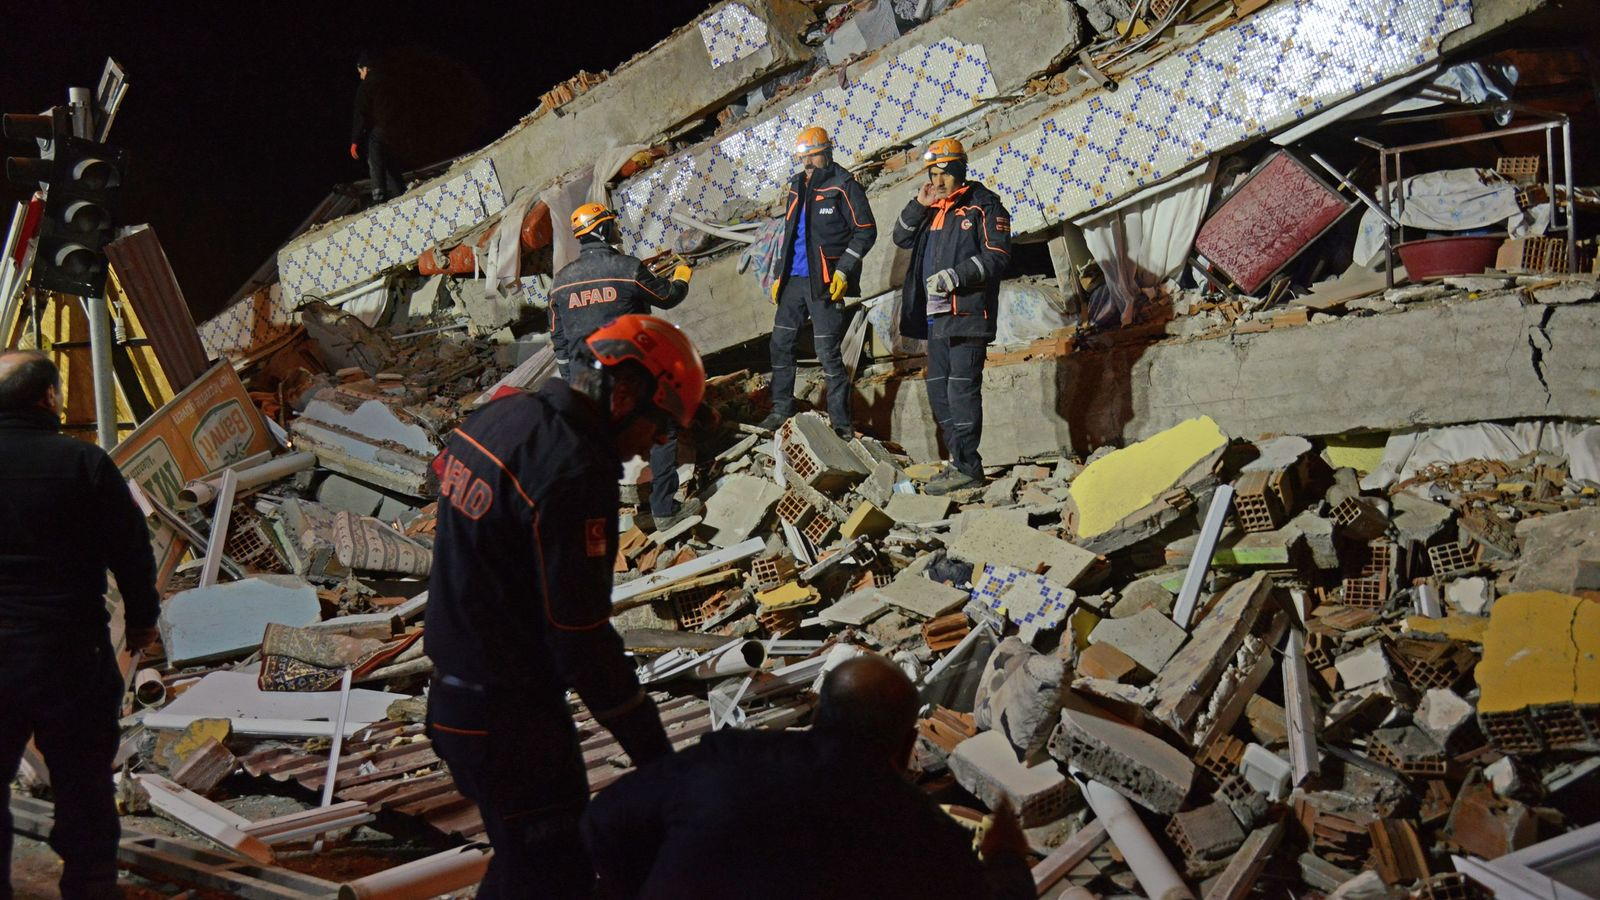 Turkey: Powerful earthquake kills 18 and injures more than 500